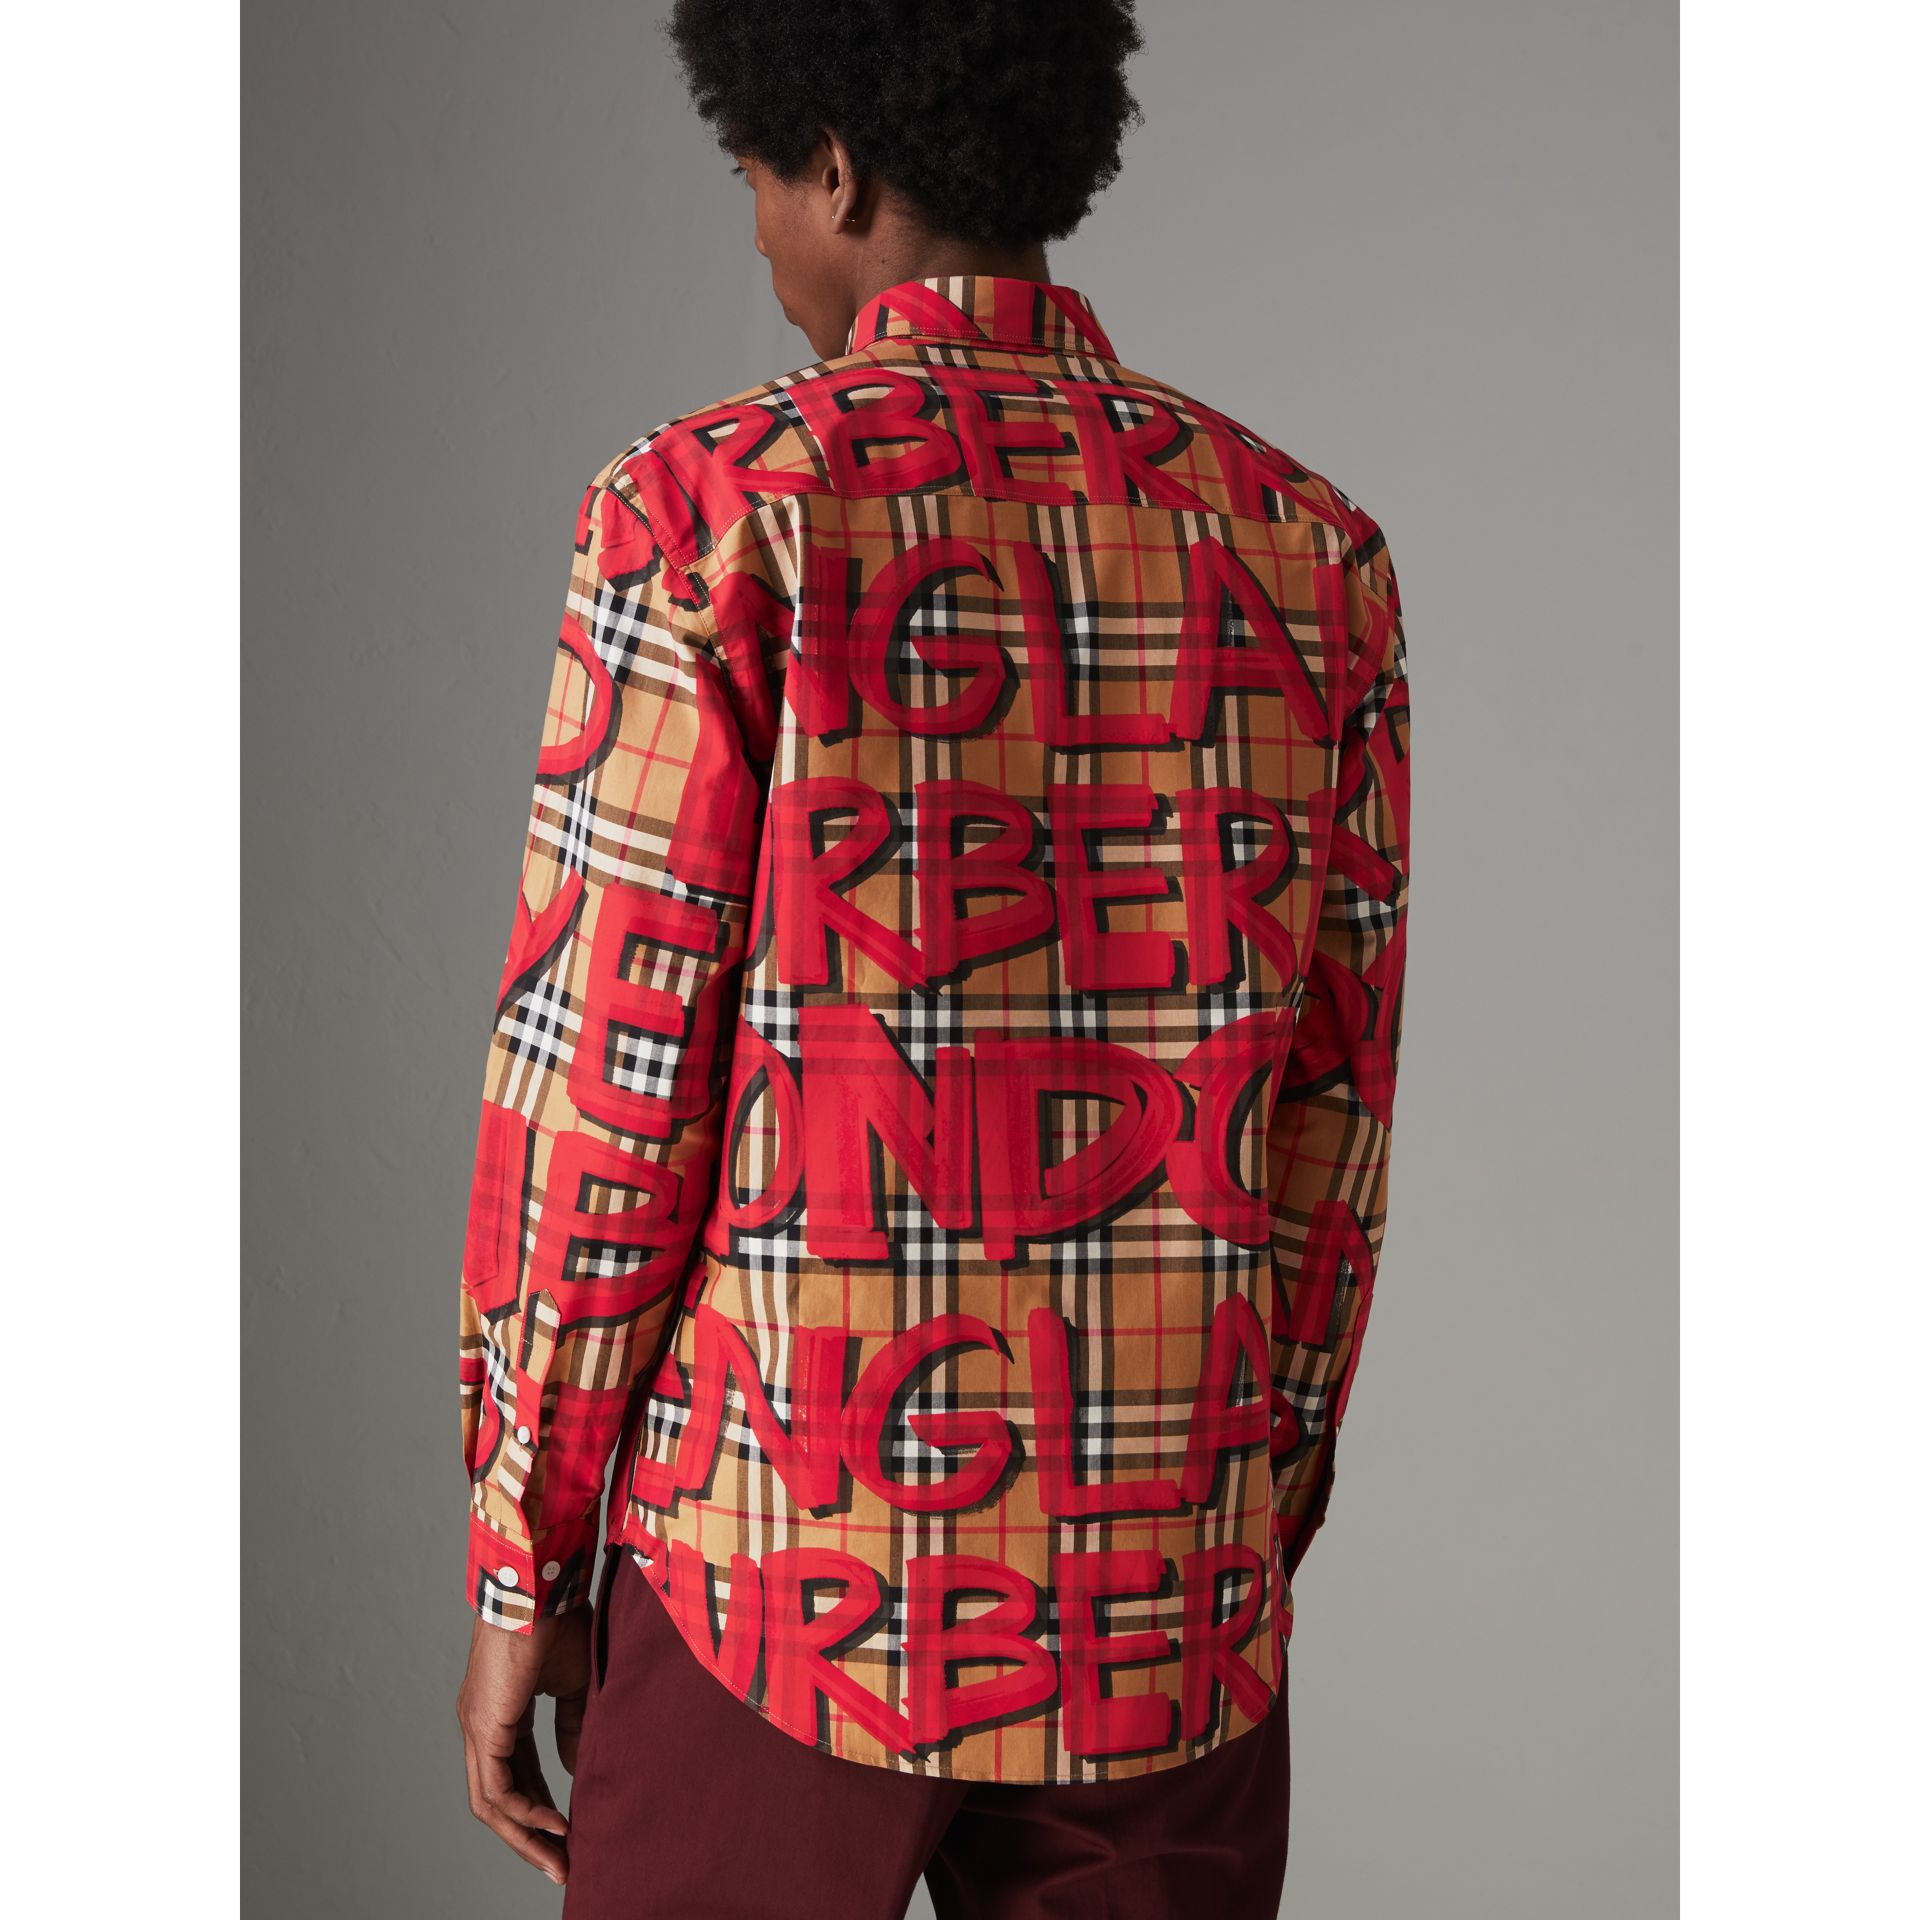 Graffiti Print Vintage Check Shirt in Bright Red - Men | Burberry Australia - gallery image 2